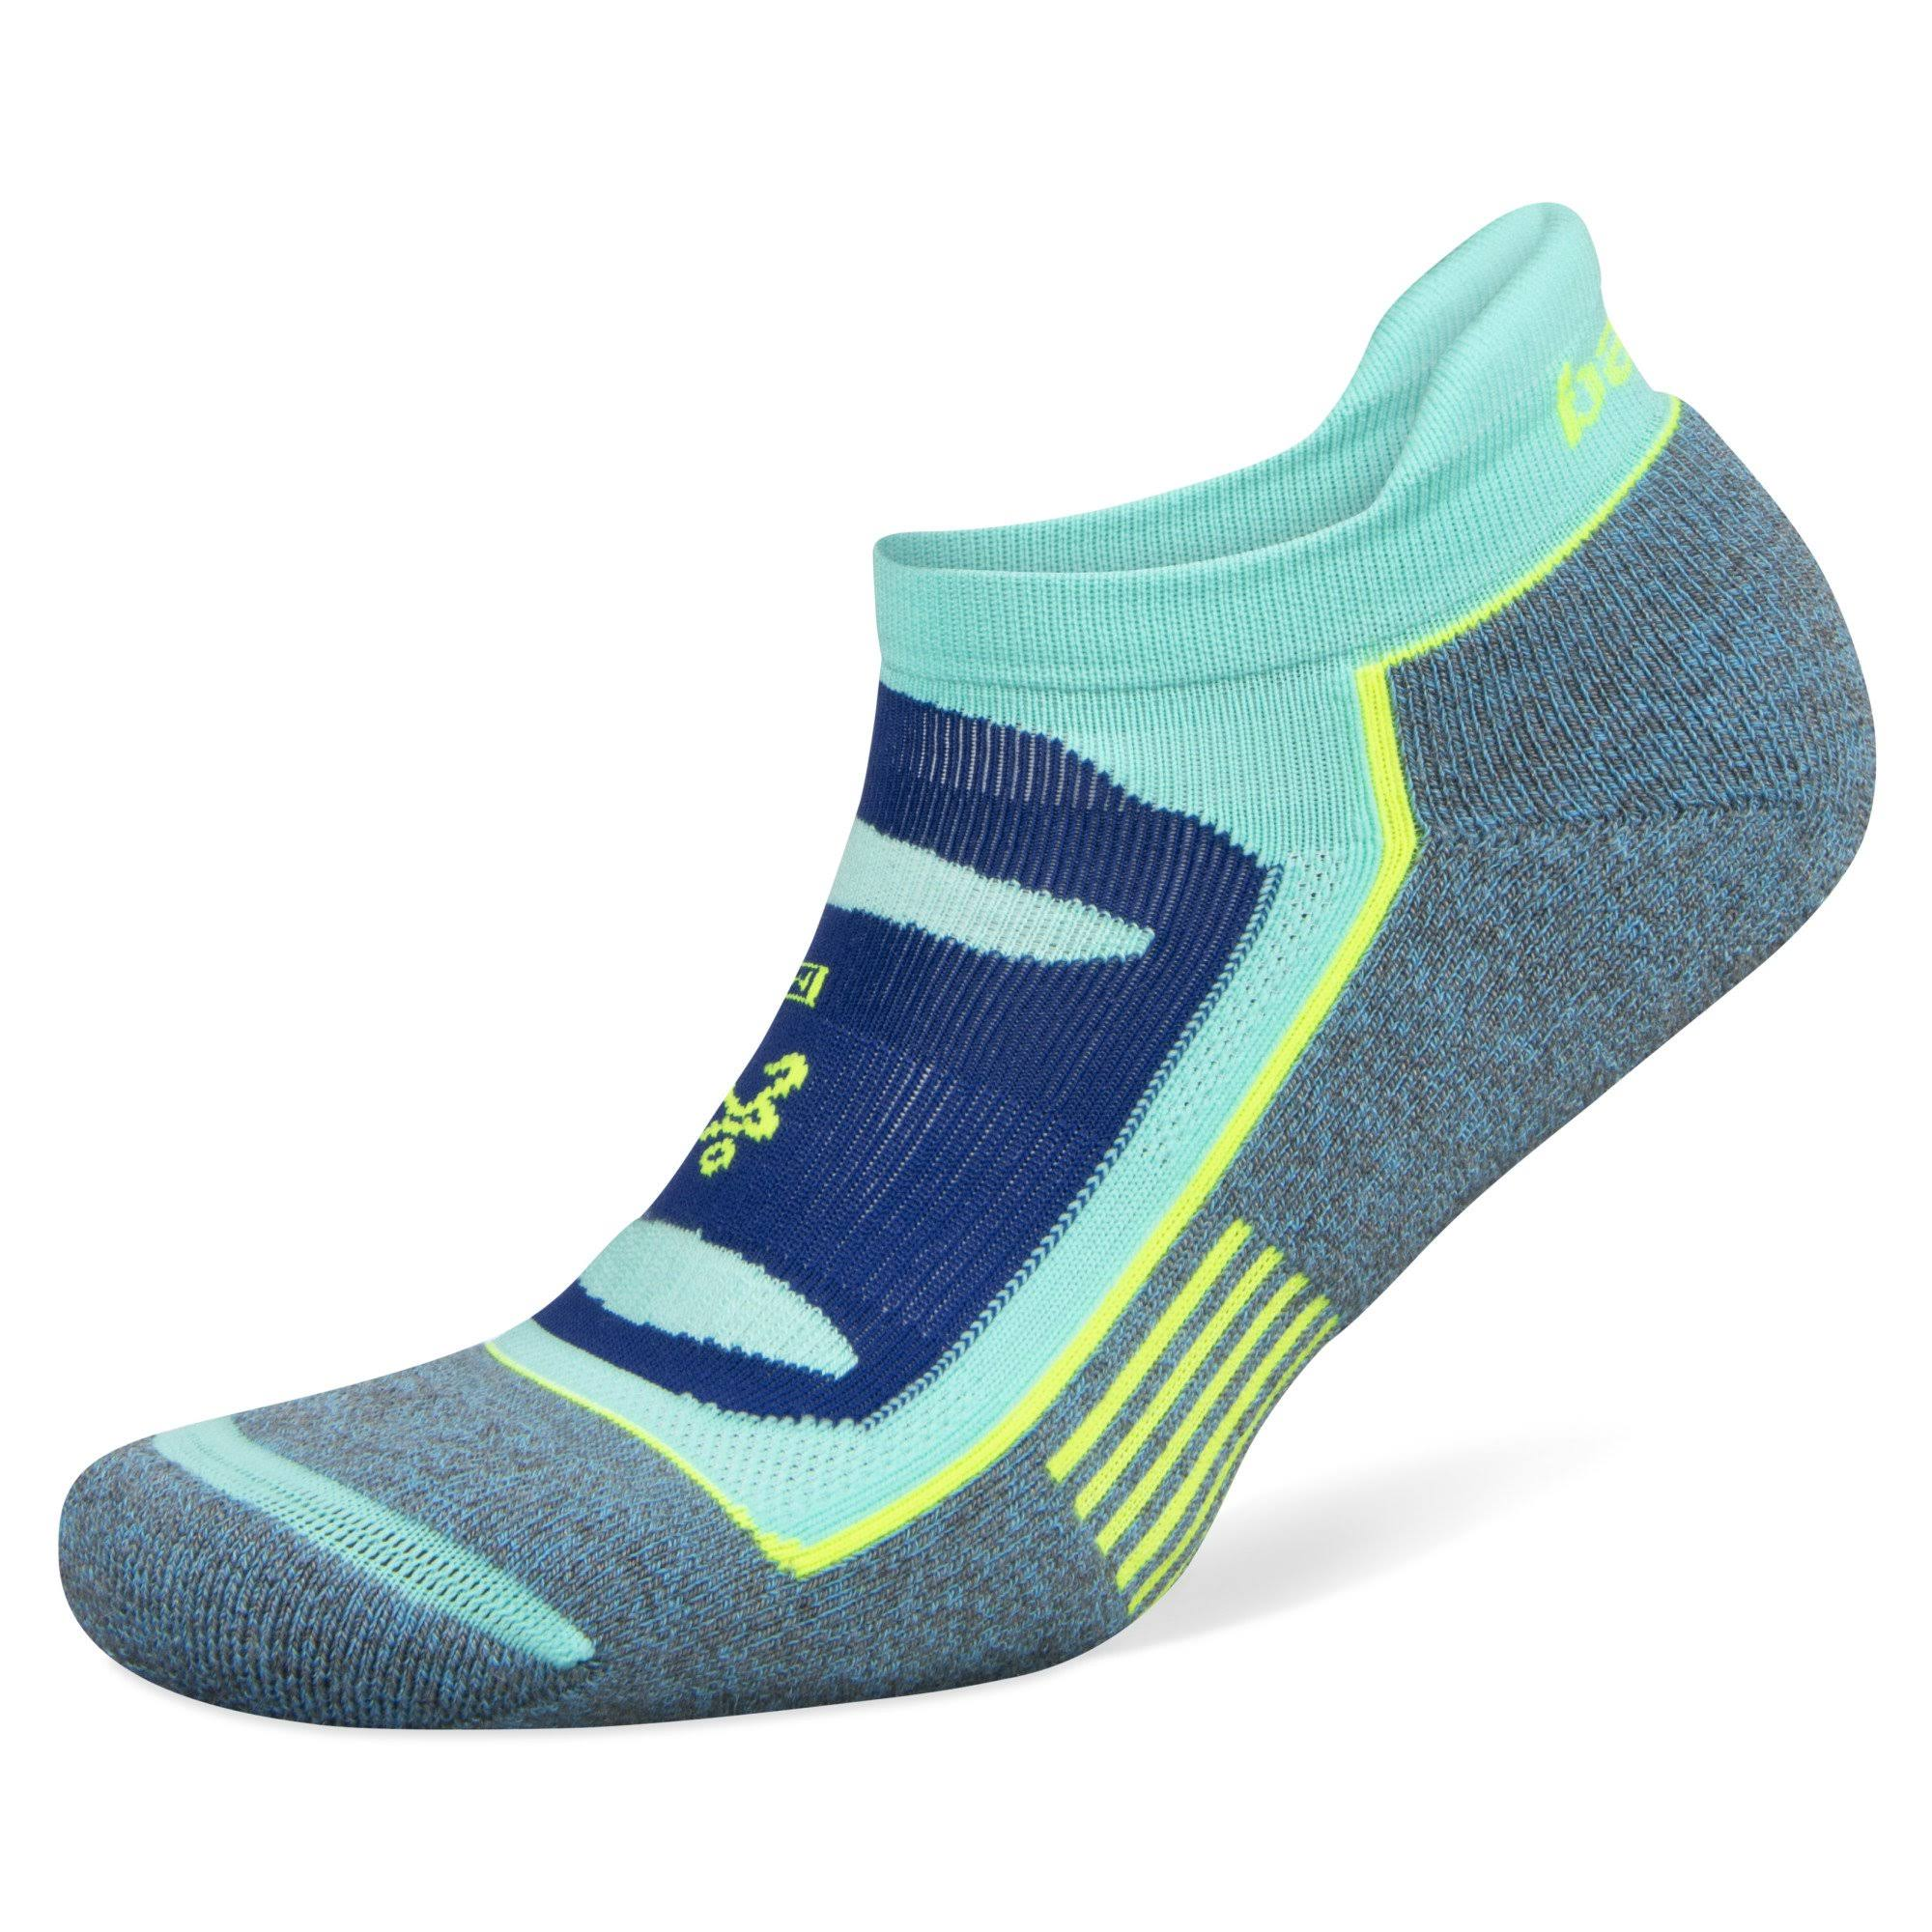 Balega Blister Resist No Show Socks - Blue/Aqua, Medium